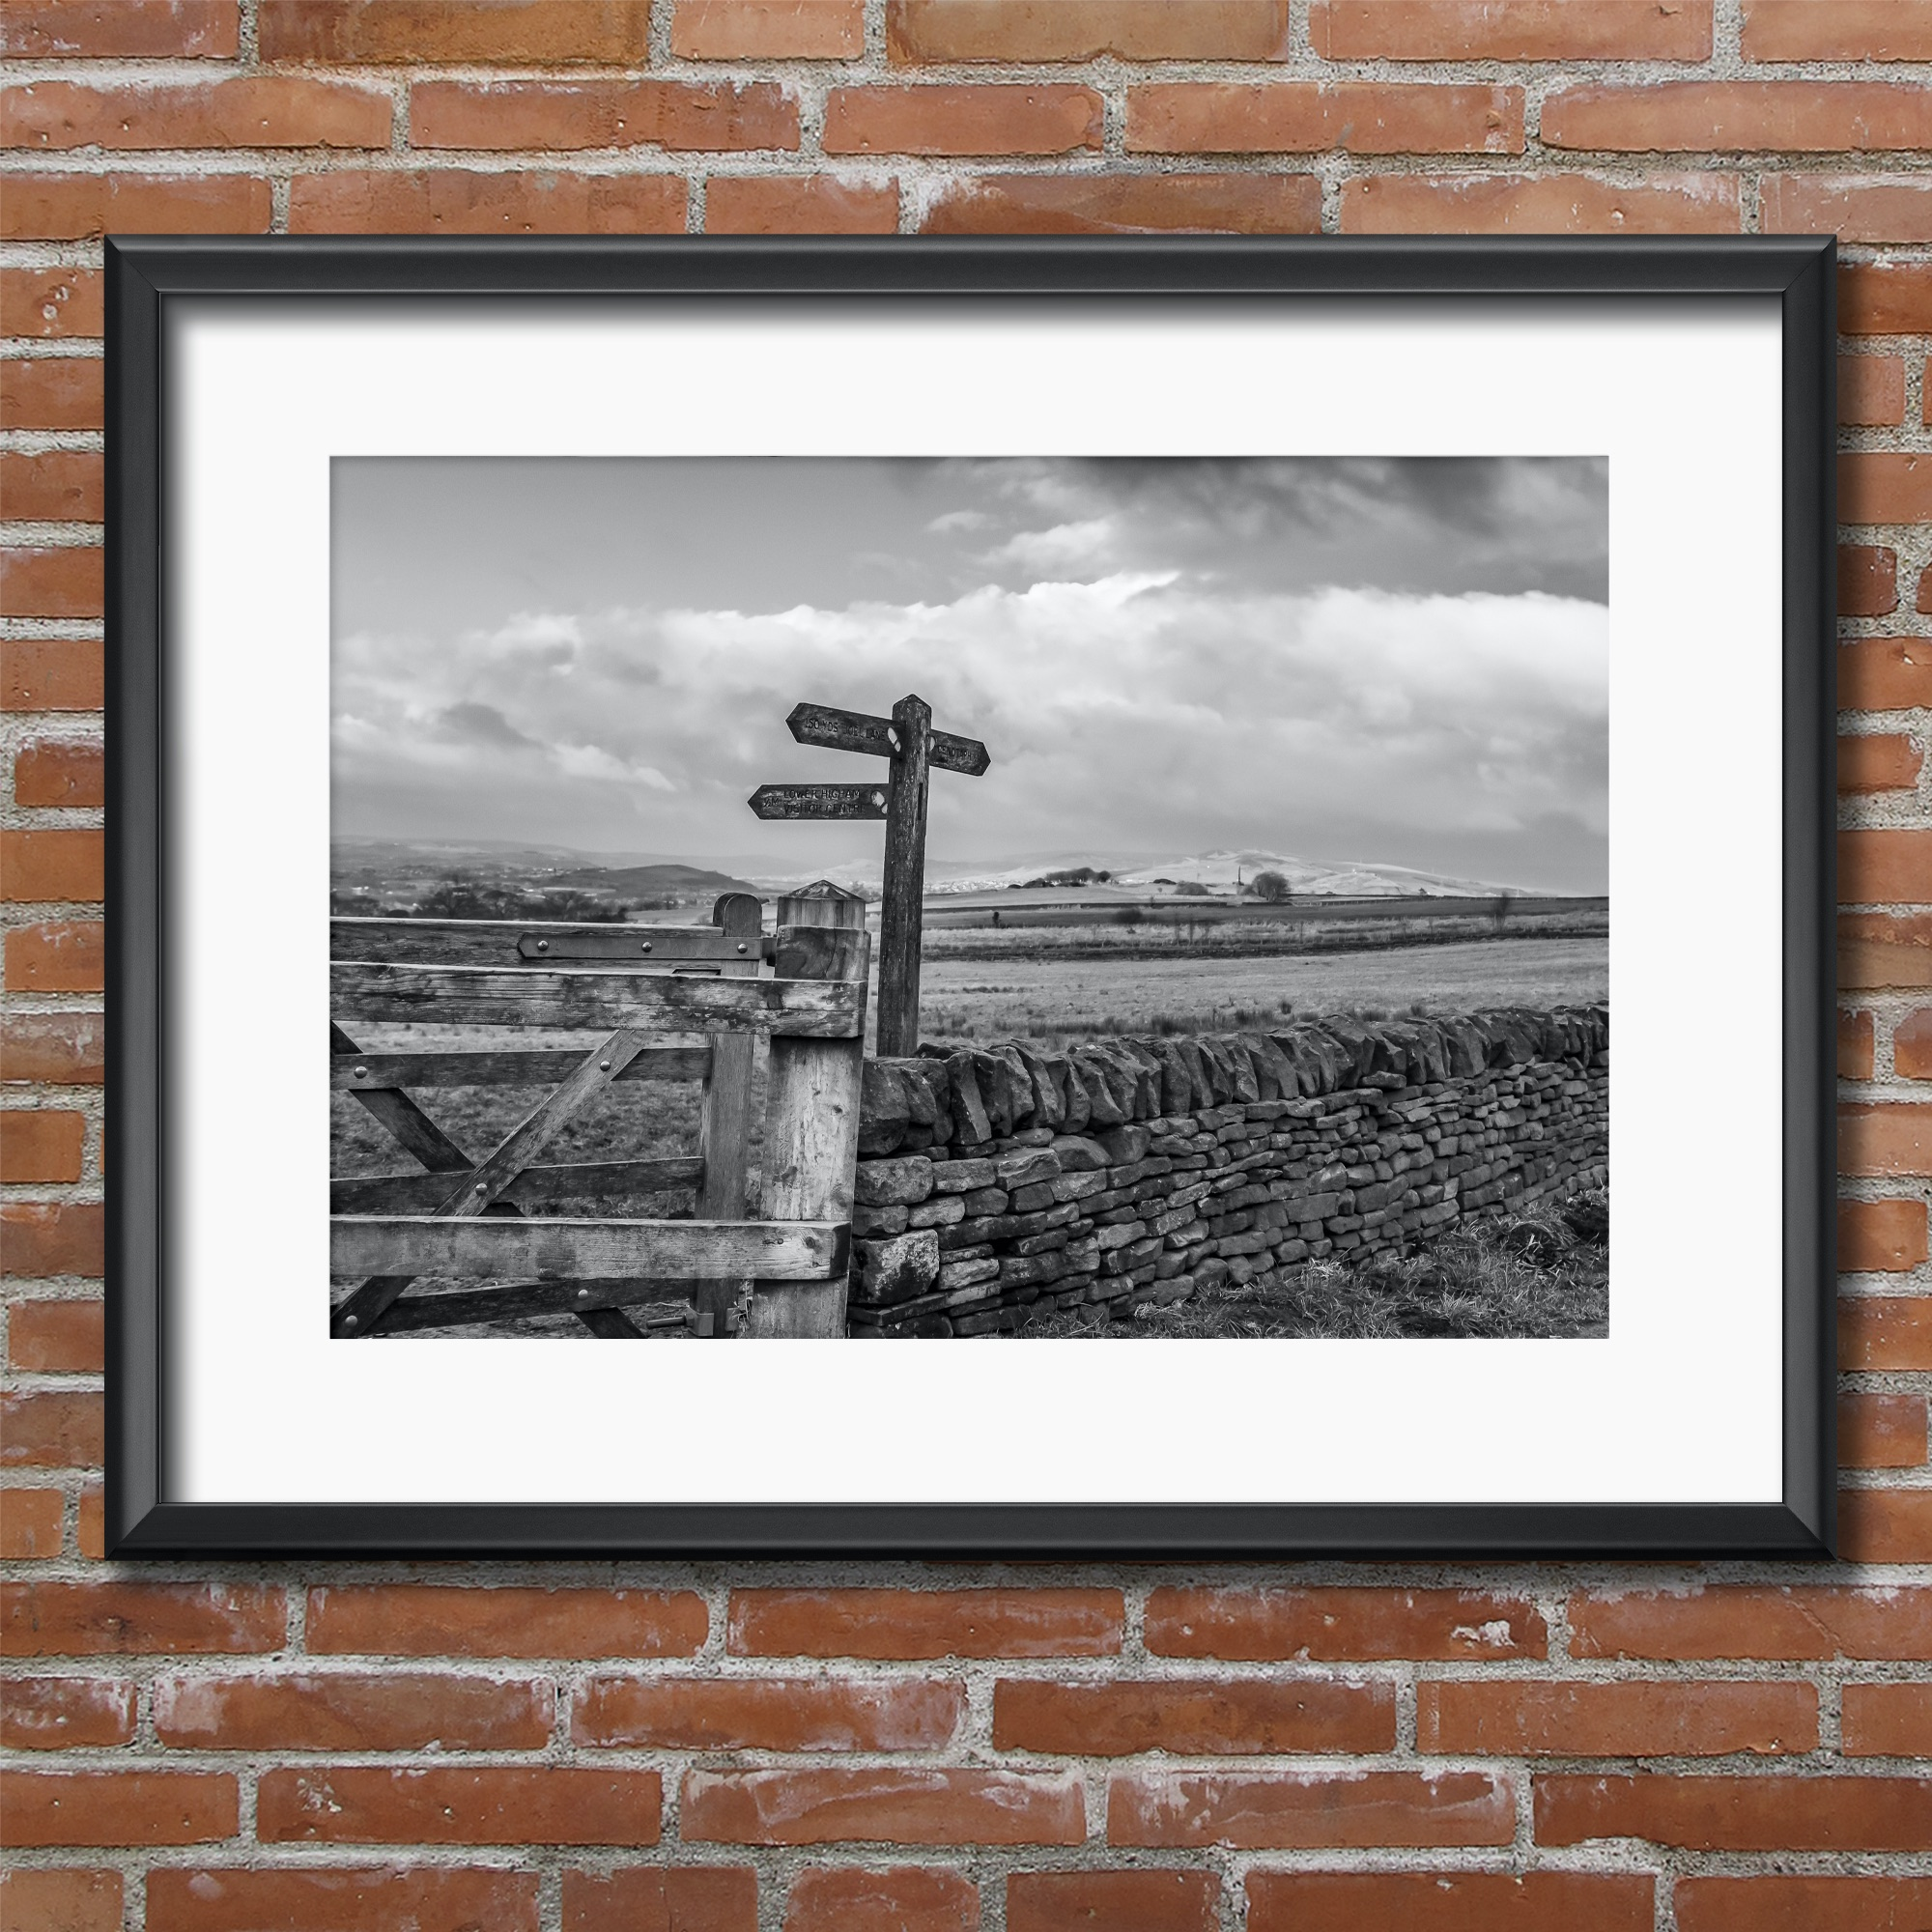 Werneth Low Cheshire